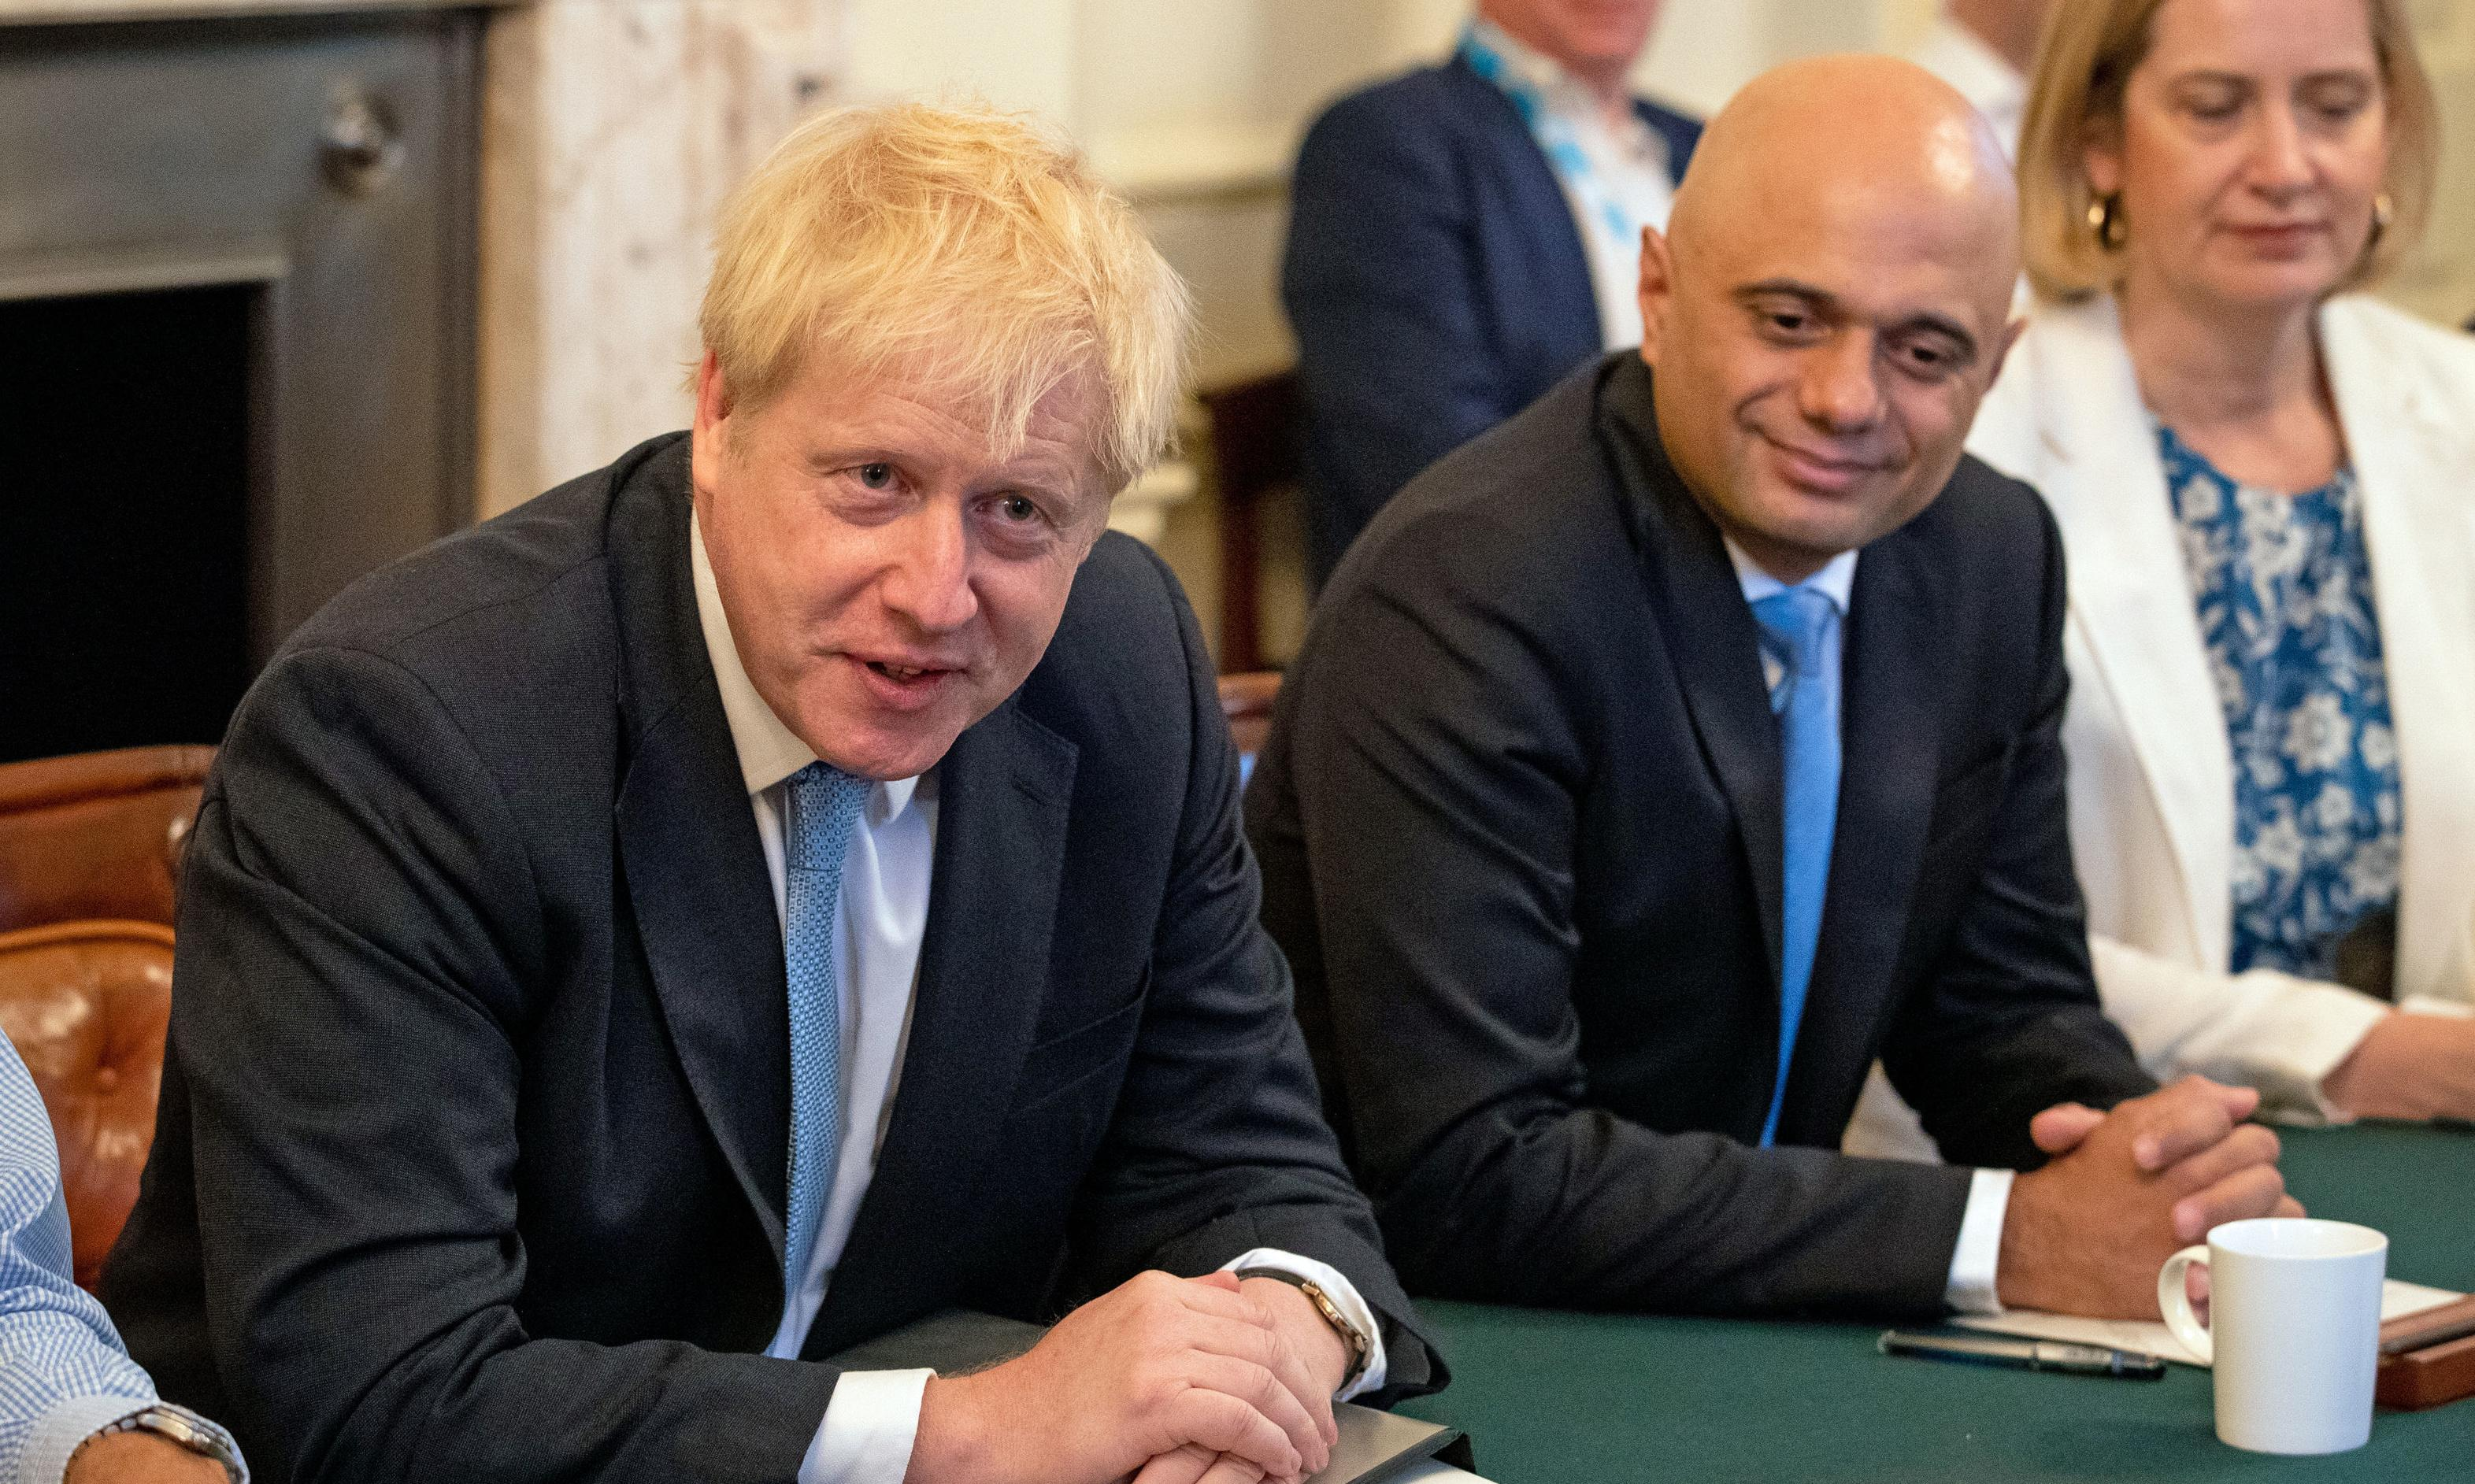 'Culture of fear' claims as Javid confronts PM over adviser's sacking